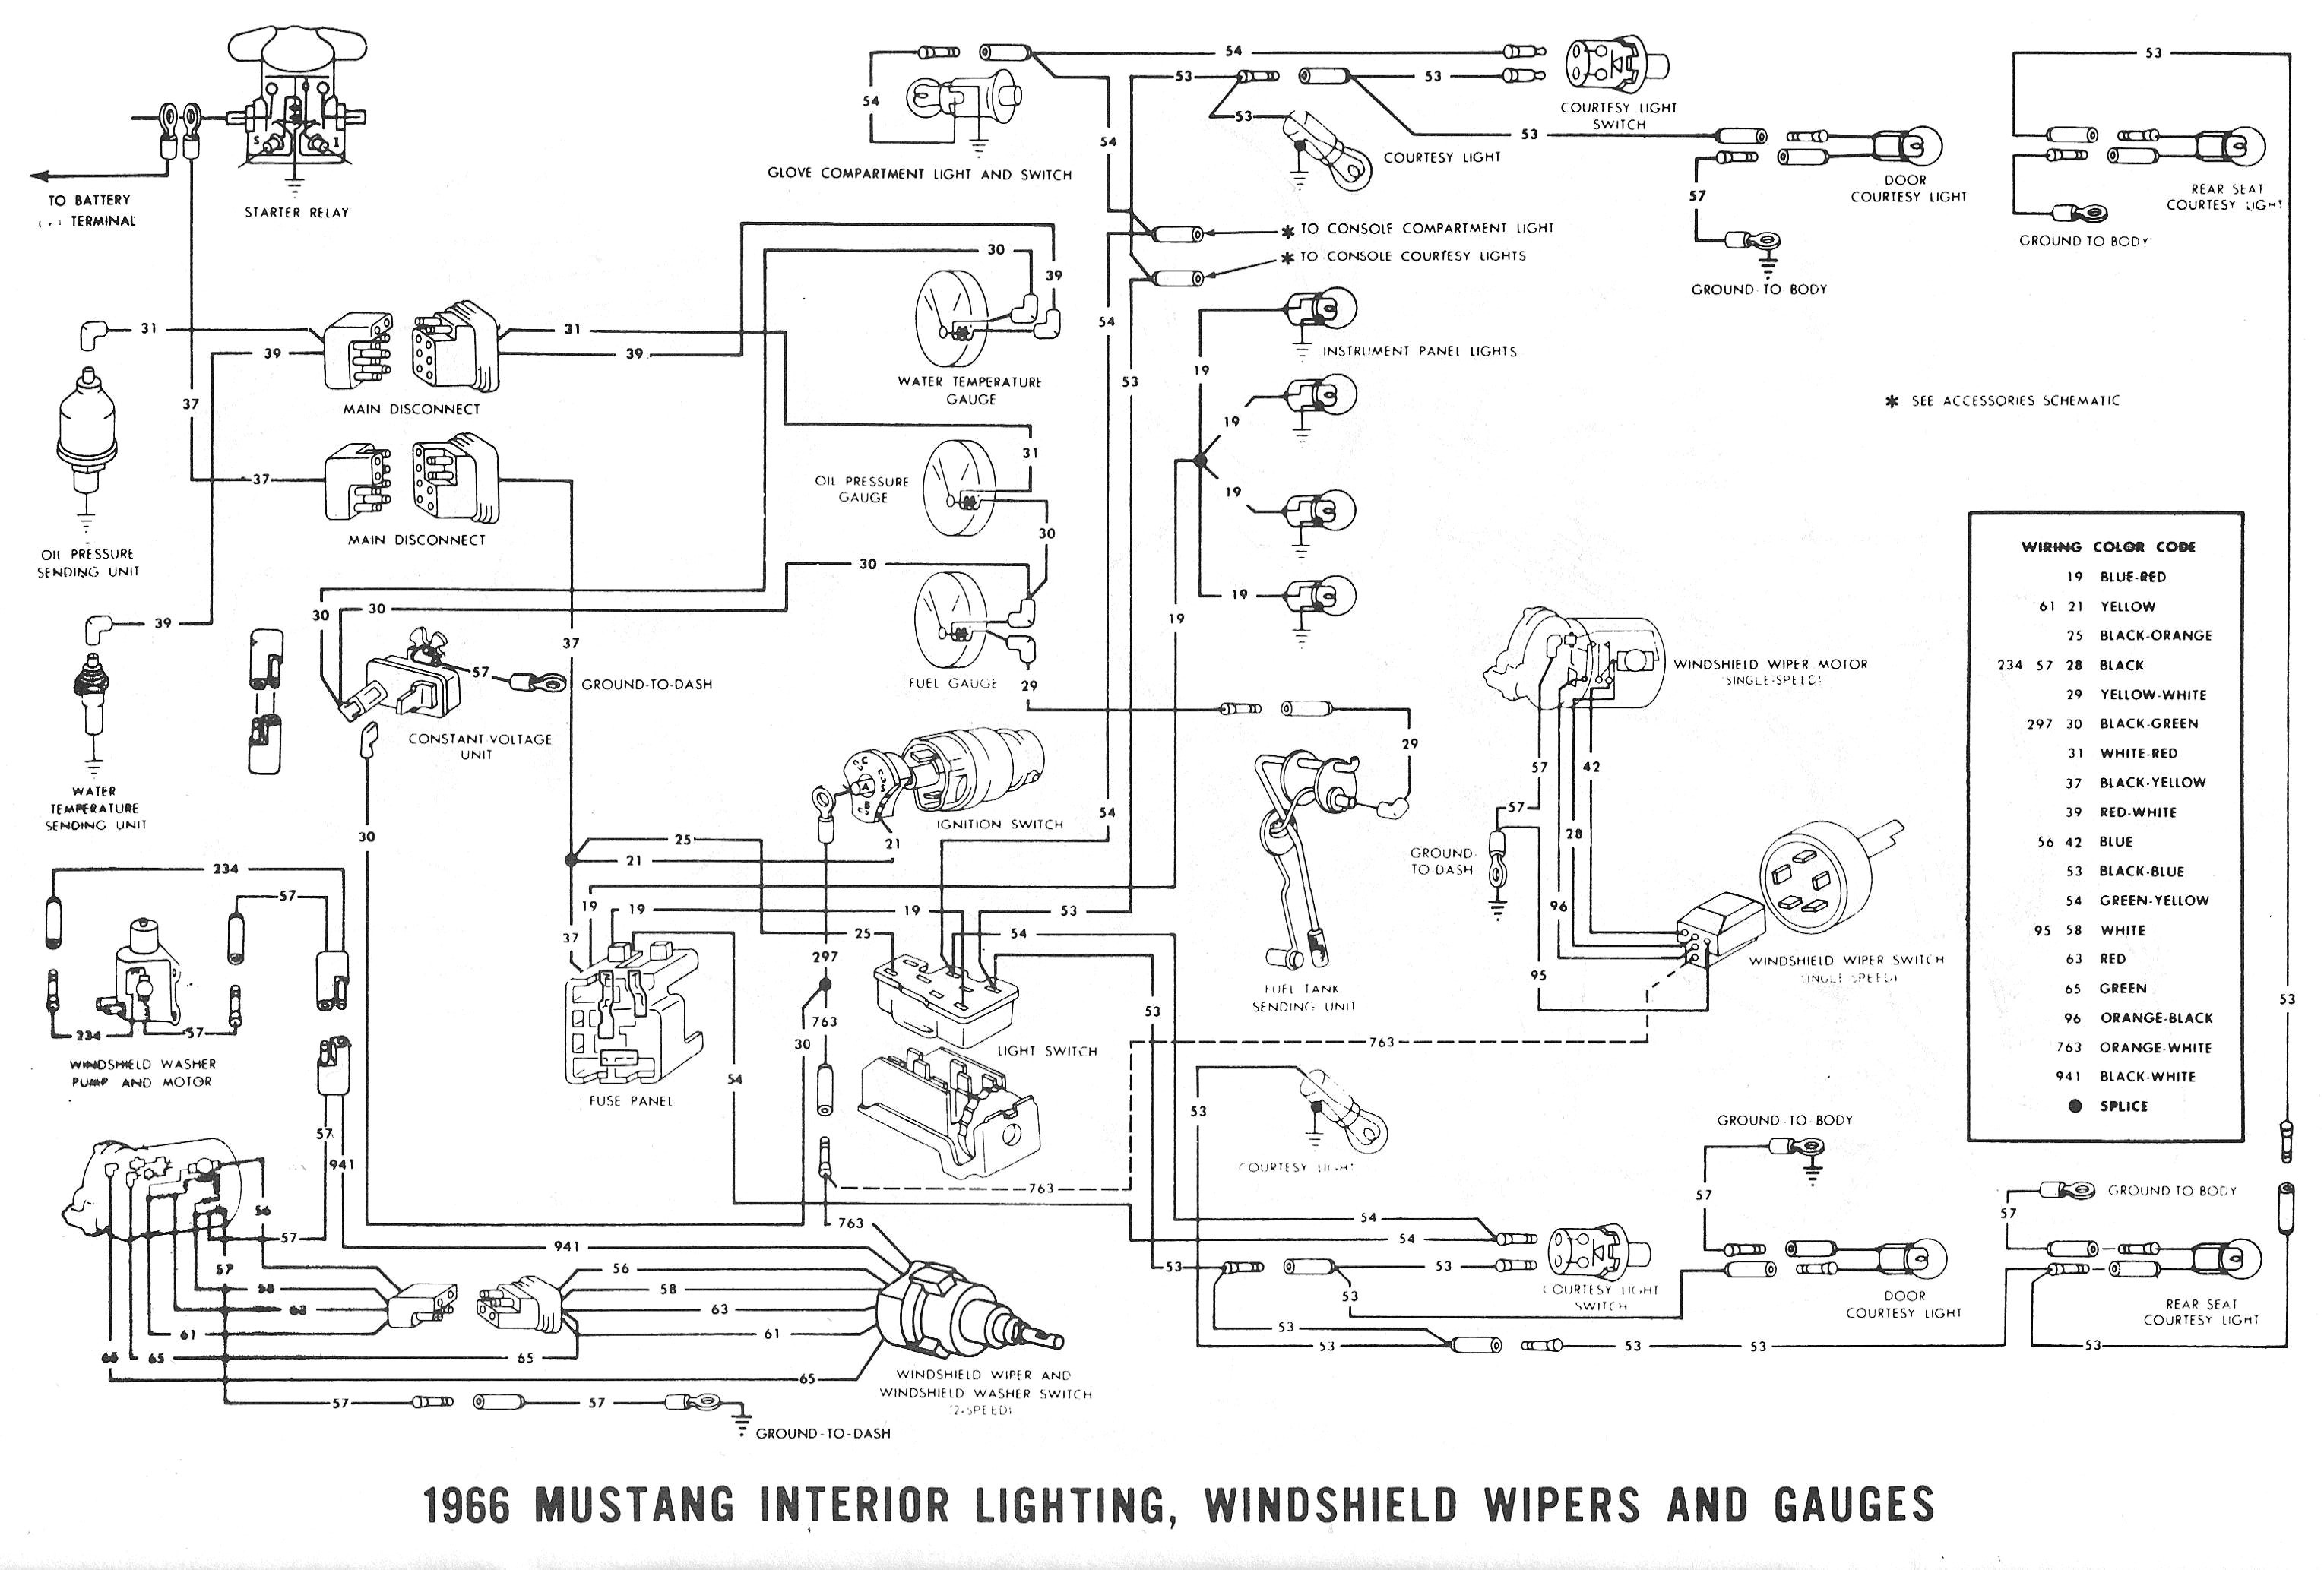 67 ford mustang engine wiring enthusiast wiring diagrams u2022 rh rasalibre  co 1965 Mustang Color Wiring